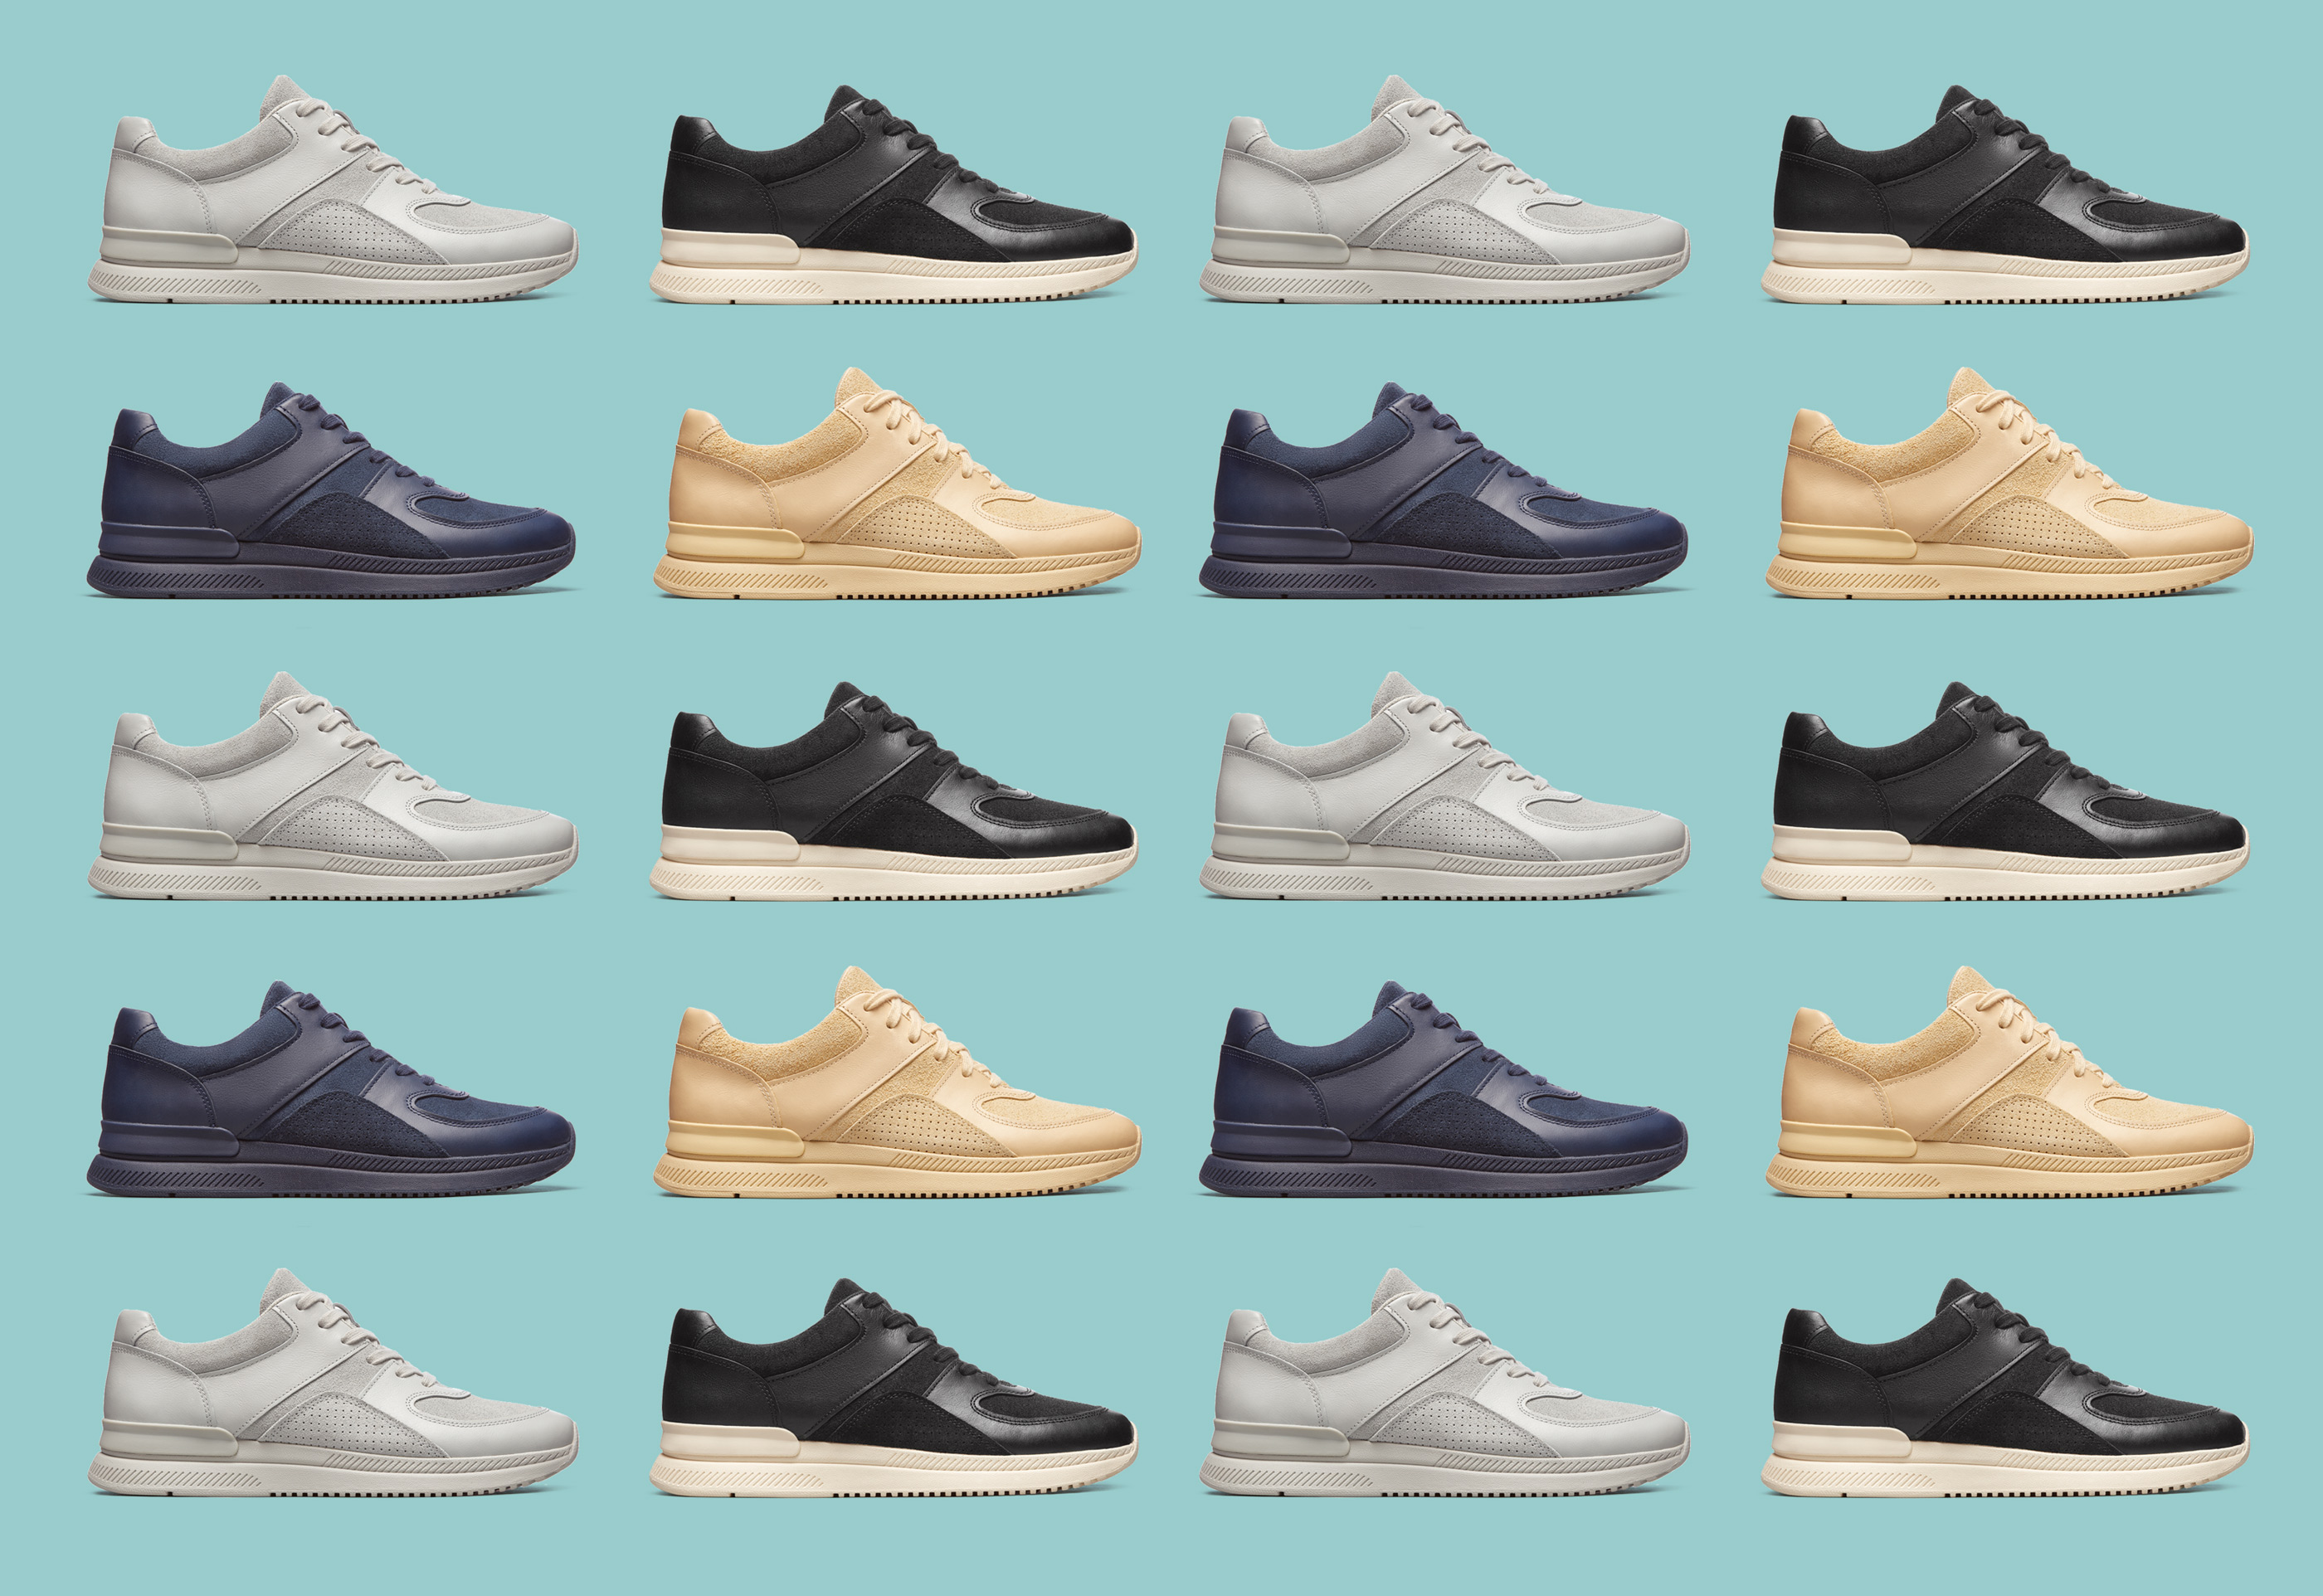 Everlane Tread Trainers Review: Are